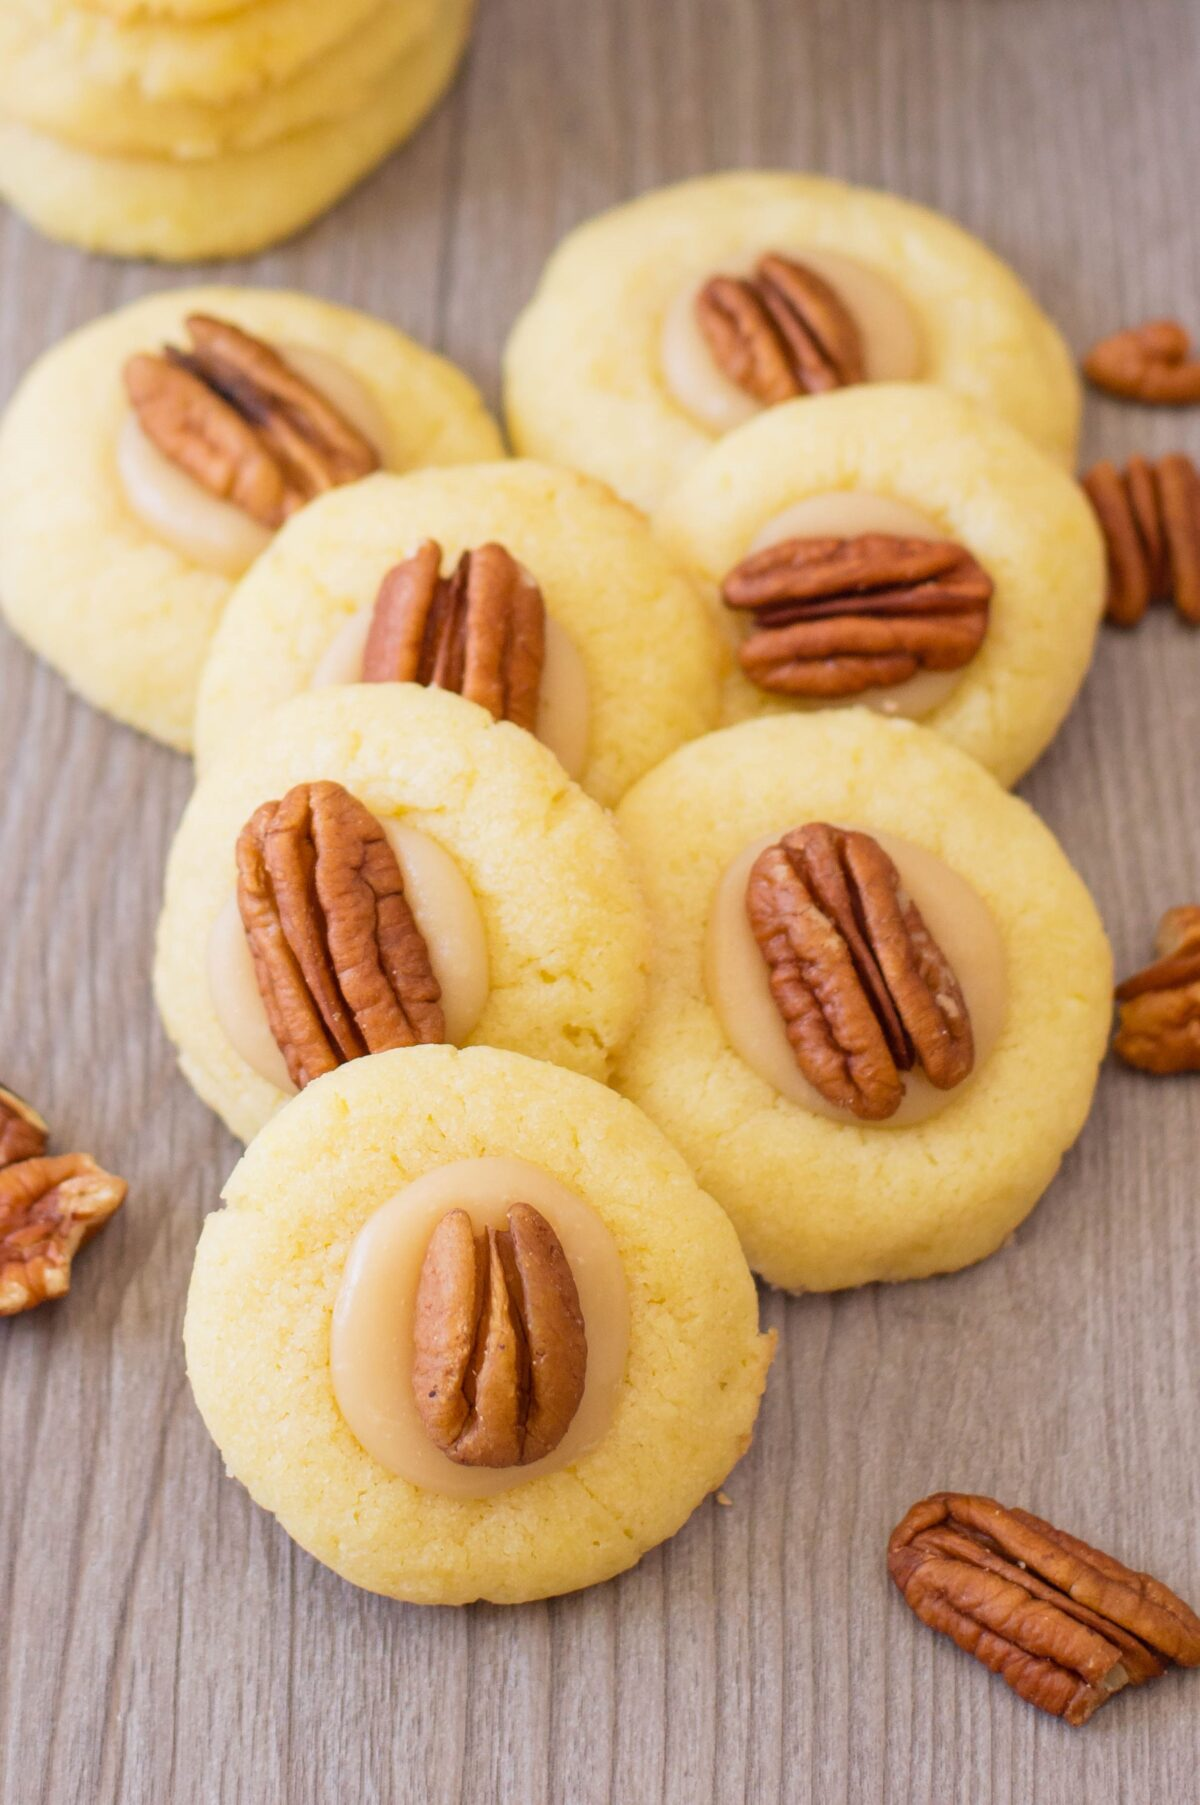 These pecan thumbprint cookies are easy to make and taste wonderful! They're perfect for holiday parties - or any day of the year, really.